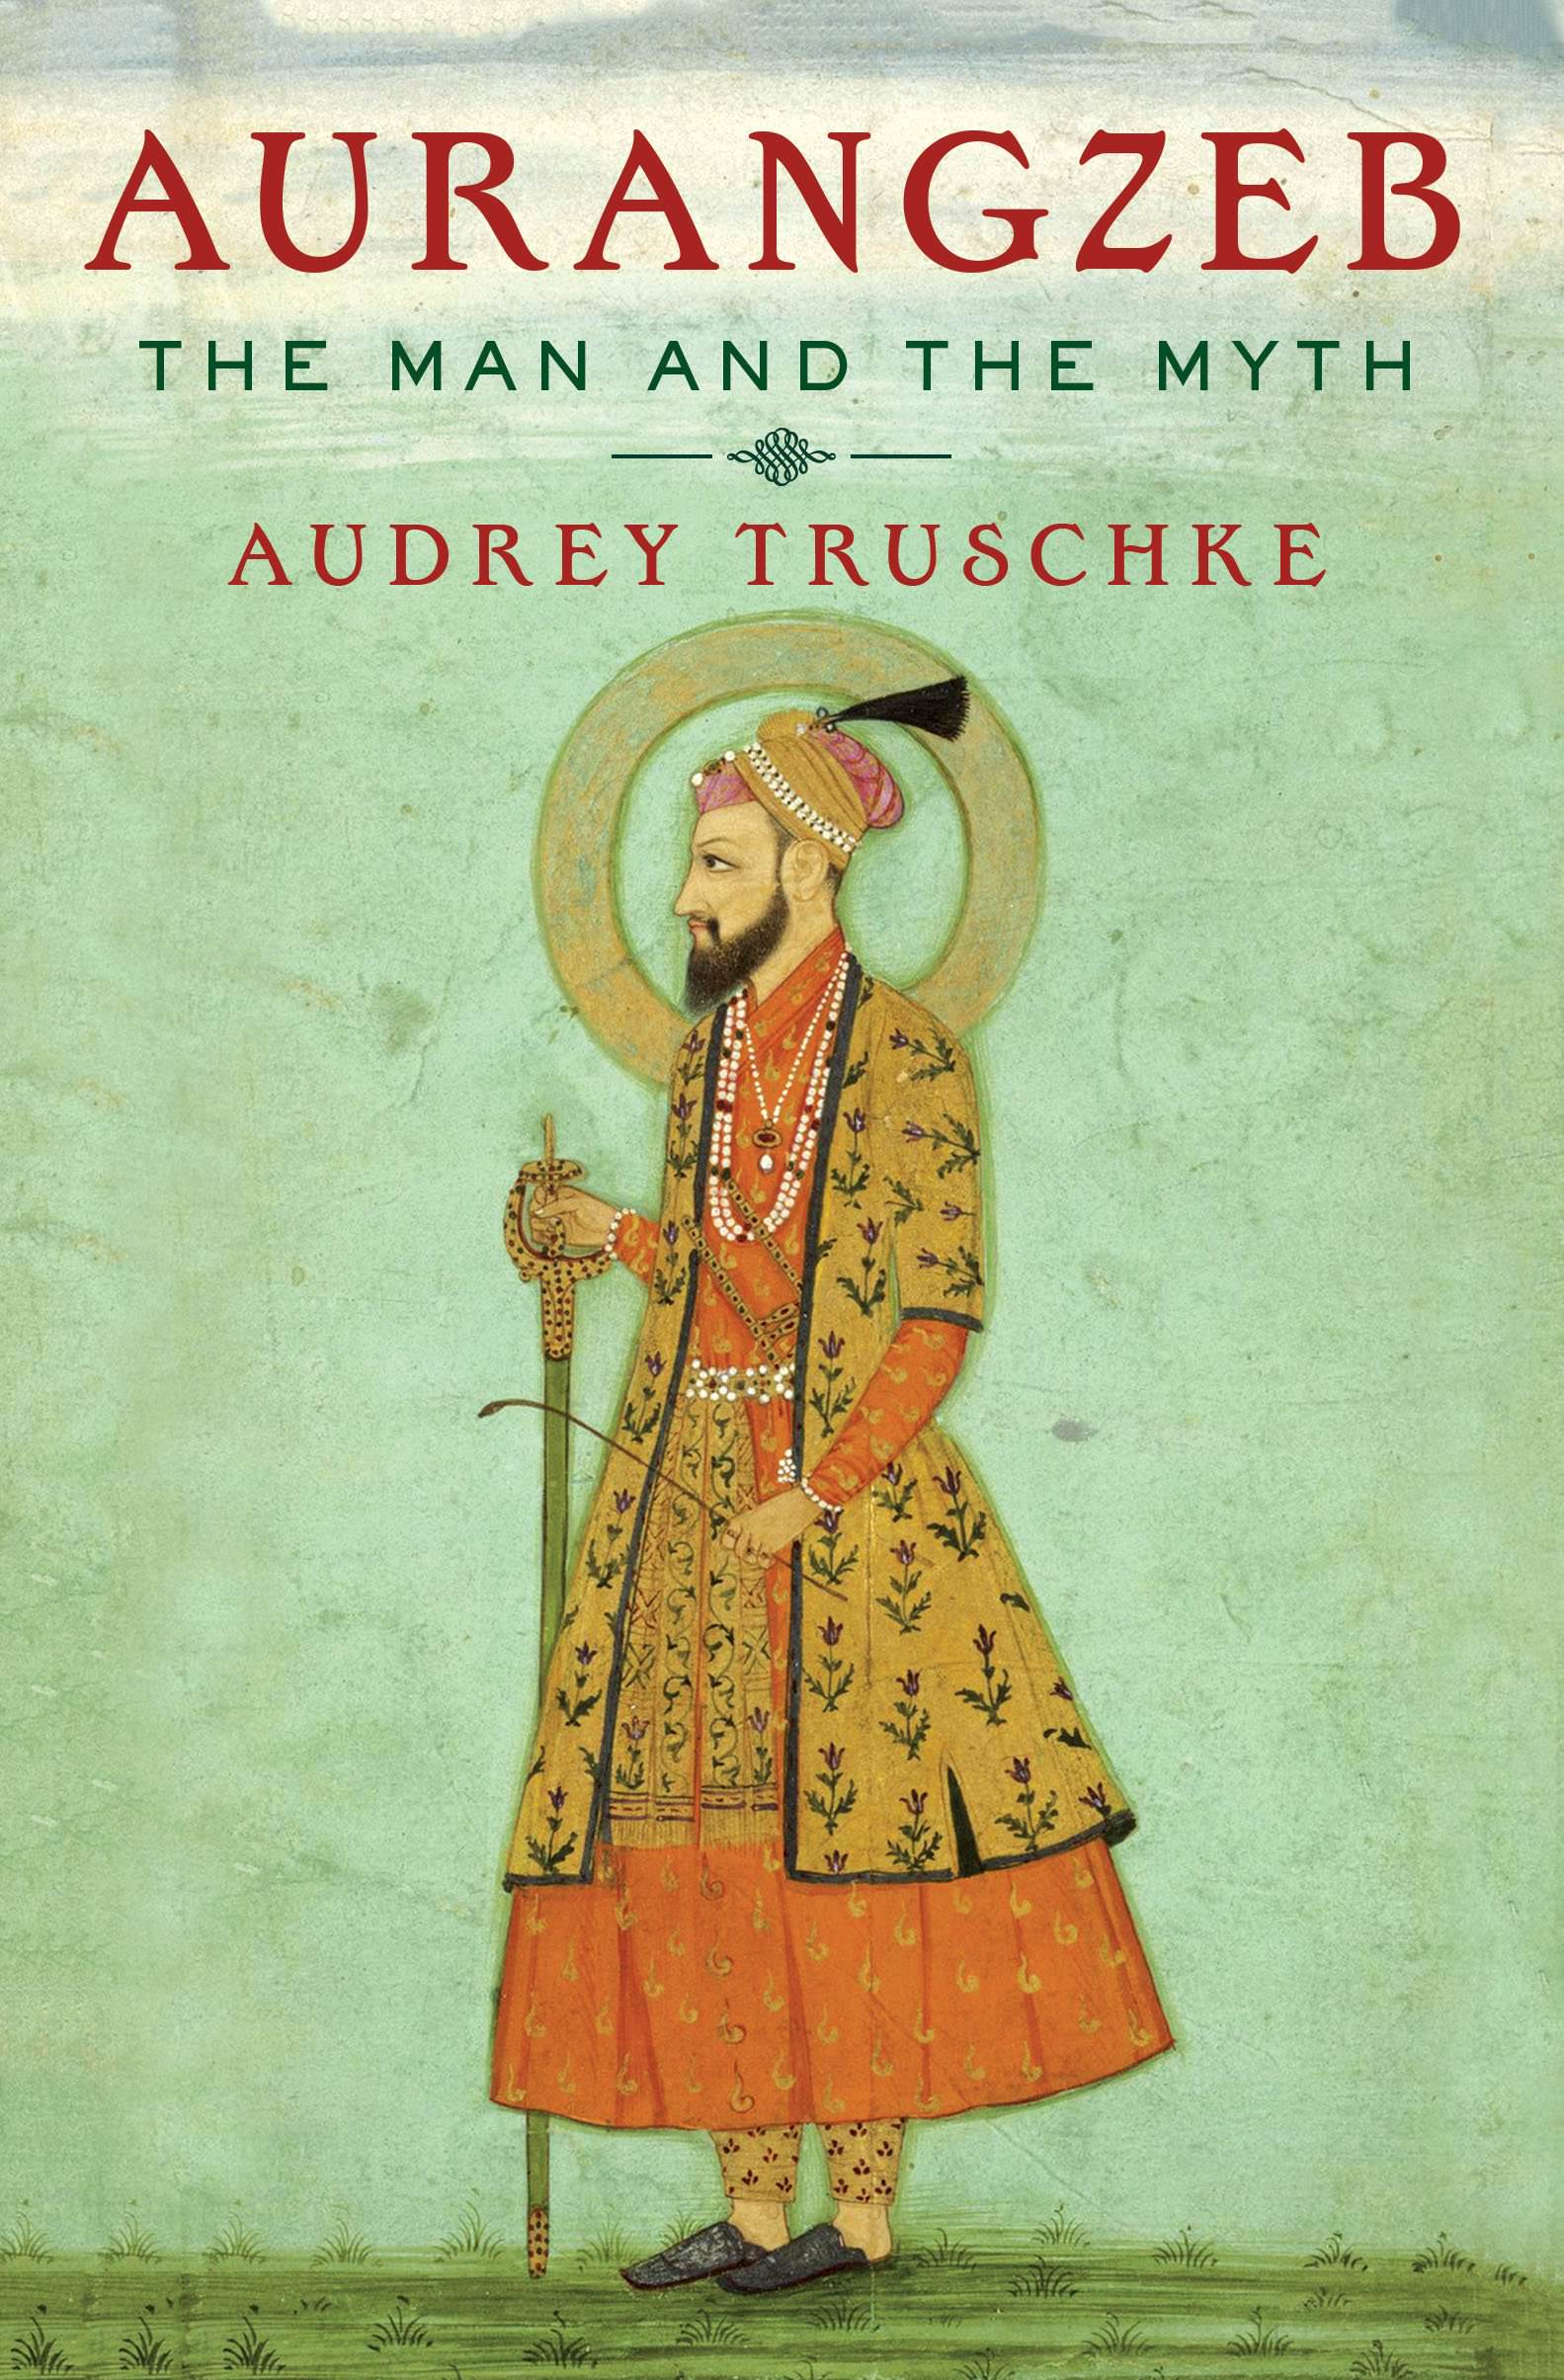 Aurangzeb: The Man and the Myth by Audrey Truschke